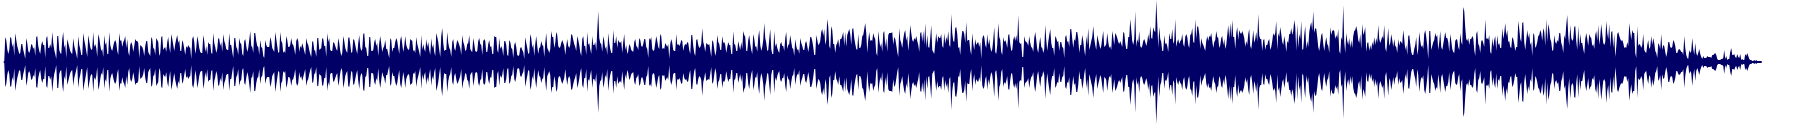 waveform of track #75148